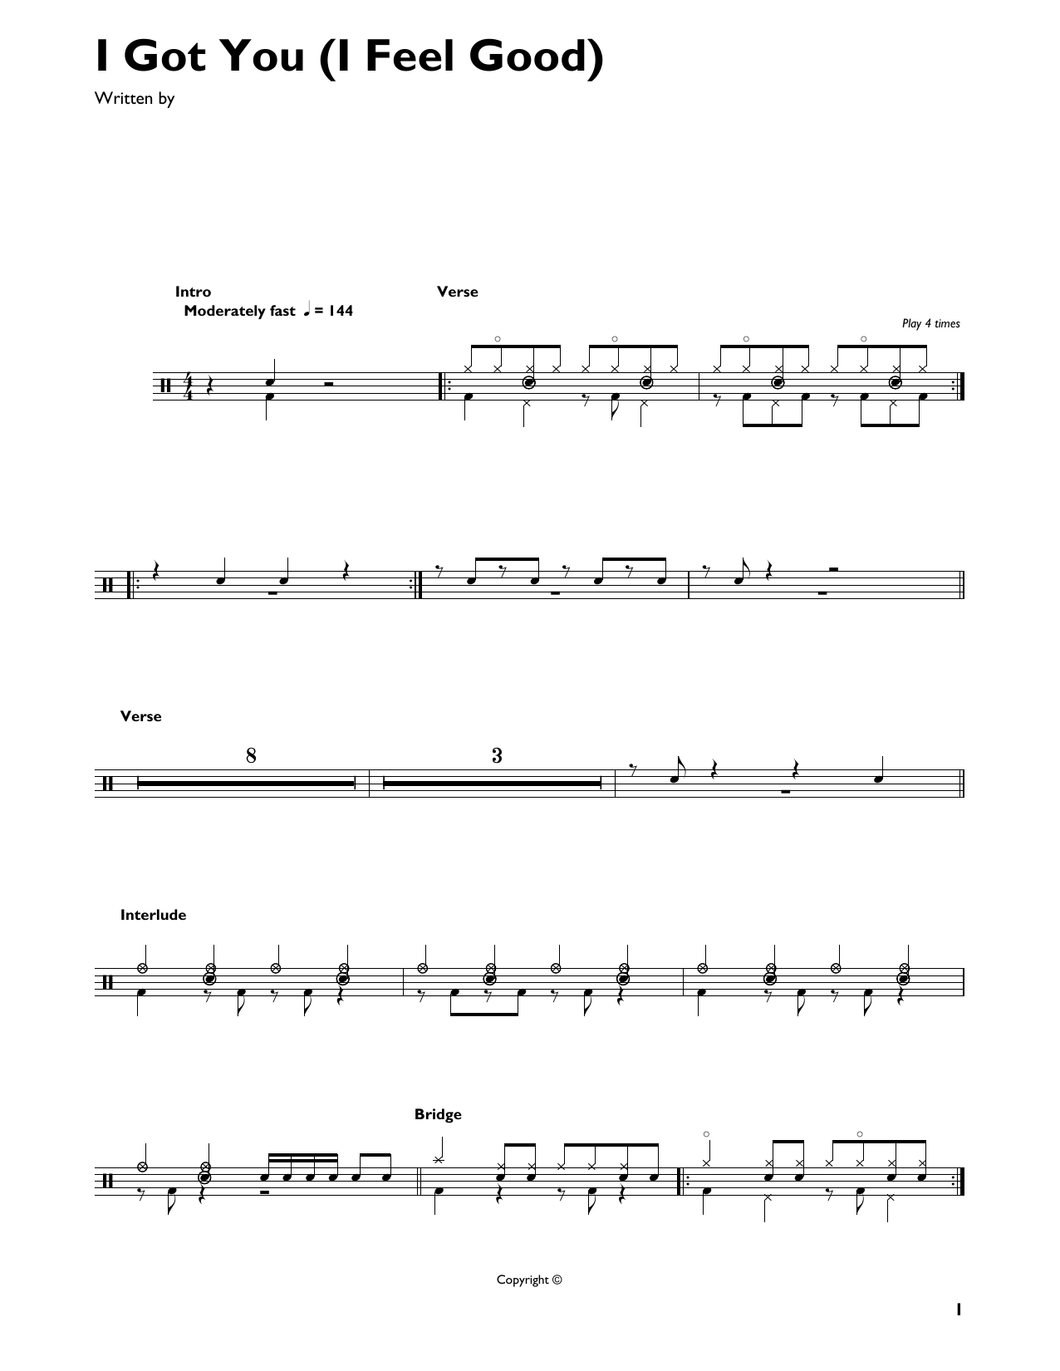 I Got You (I Feel Good) - James Brown - Full Drum Transcription / Drum Sheet Music - SheetMusicDirect DT427084